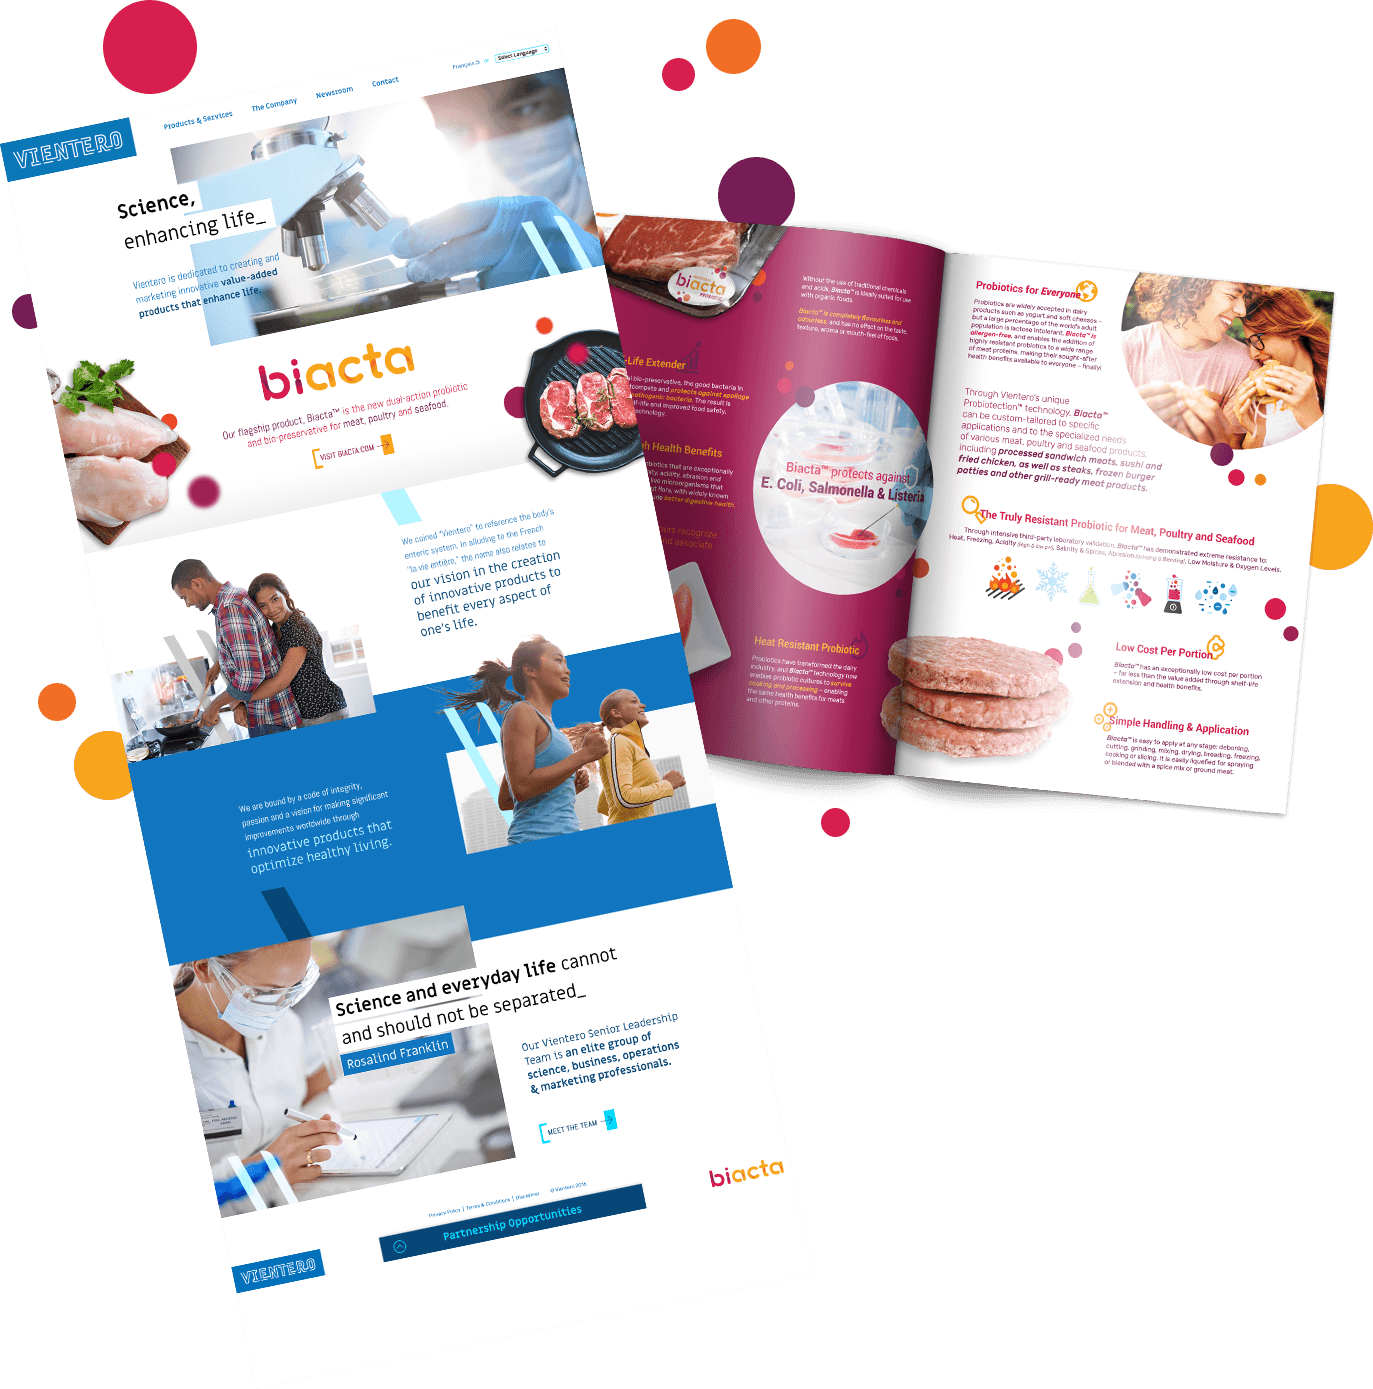 Vientero website and Biacta booklet